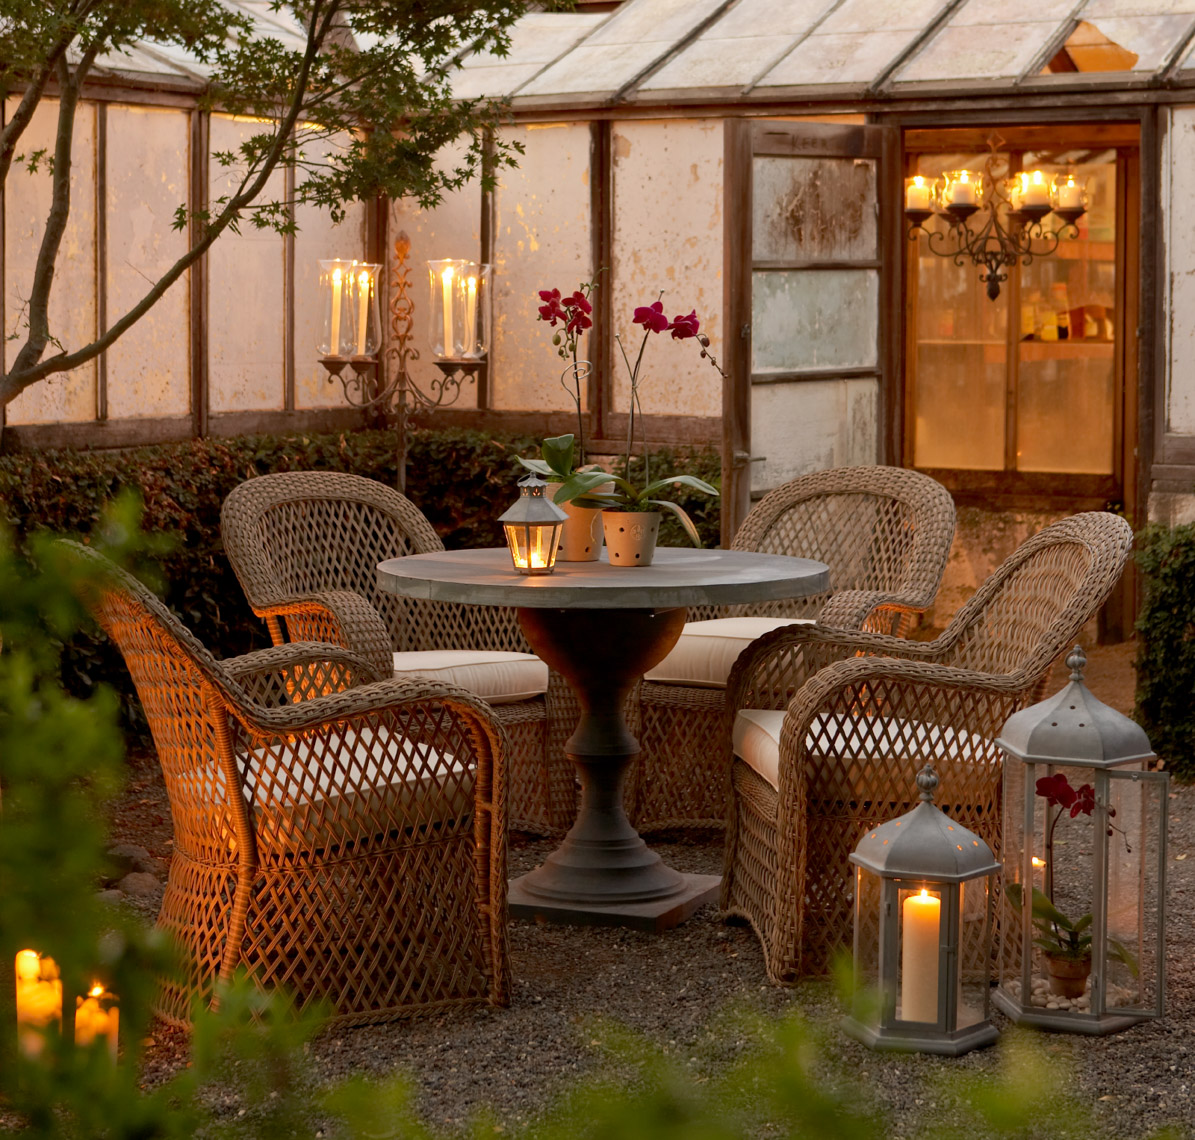 Wicker furniture collection with lanterns at dusk in front of potting shed San Francisco lifestyle photographer